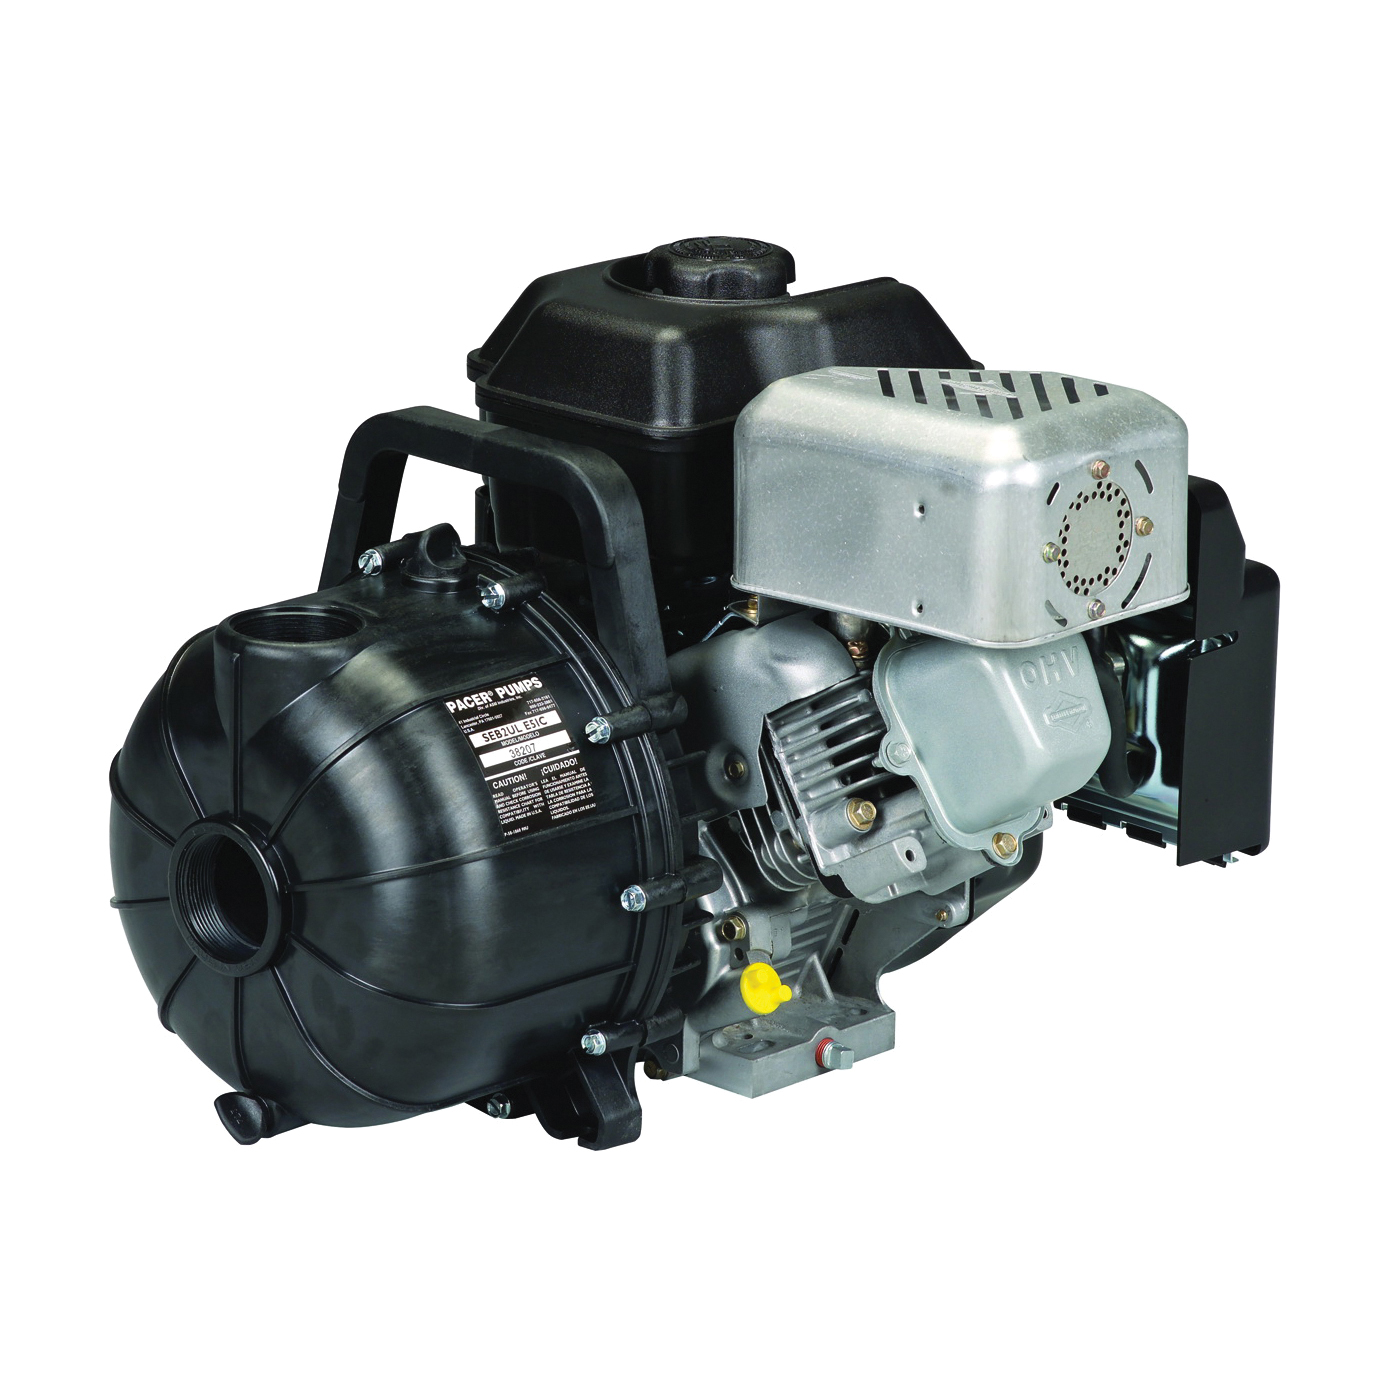 Picture of PACER PUMPS S Series SE2ULE950 Centrifugal Pump, 5.5 hp, 2 in Outlet, 130 ft Max Head, 190 gpm